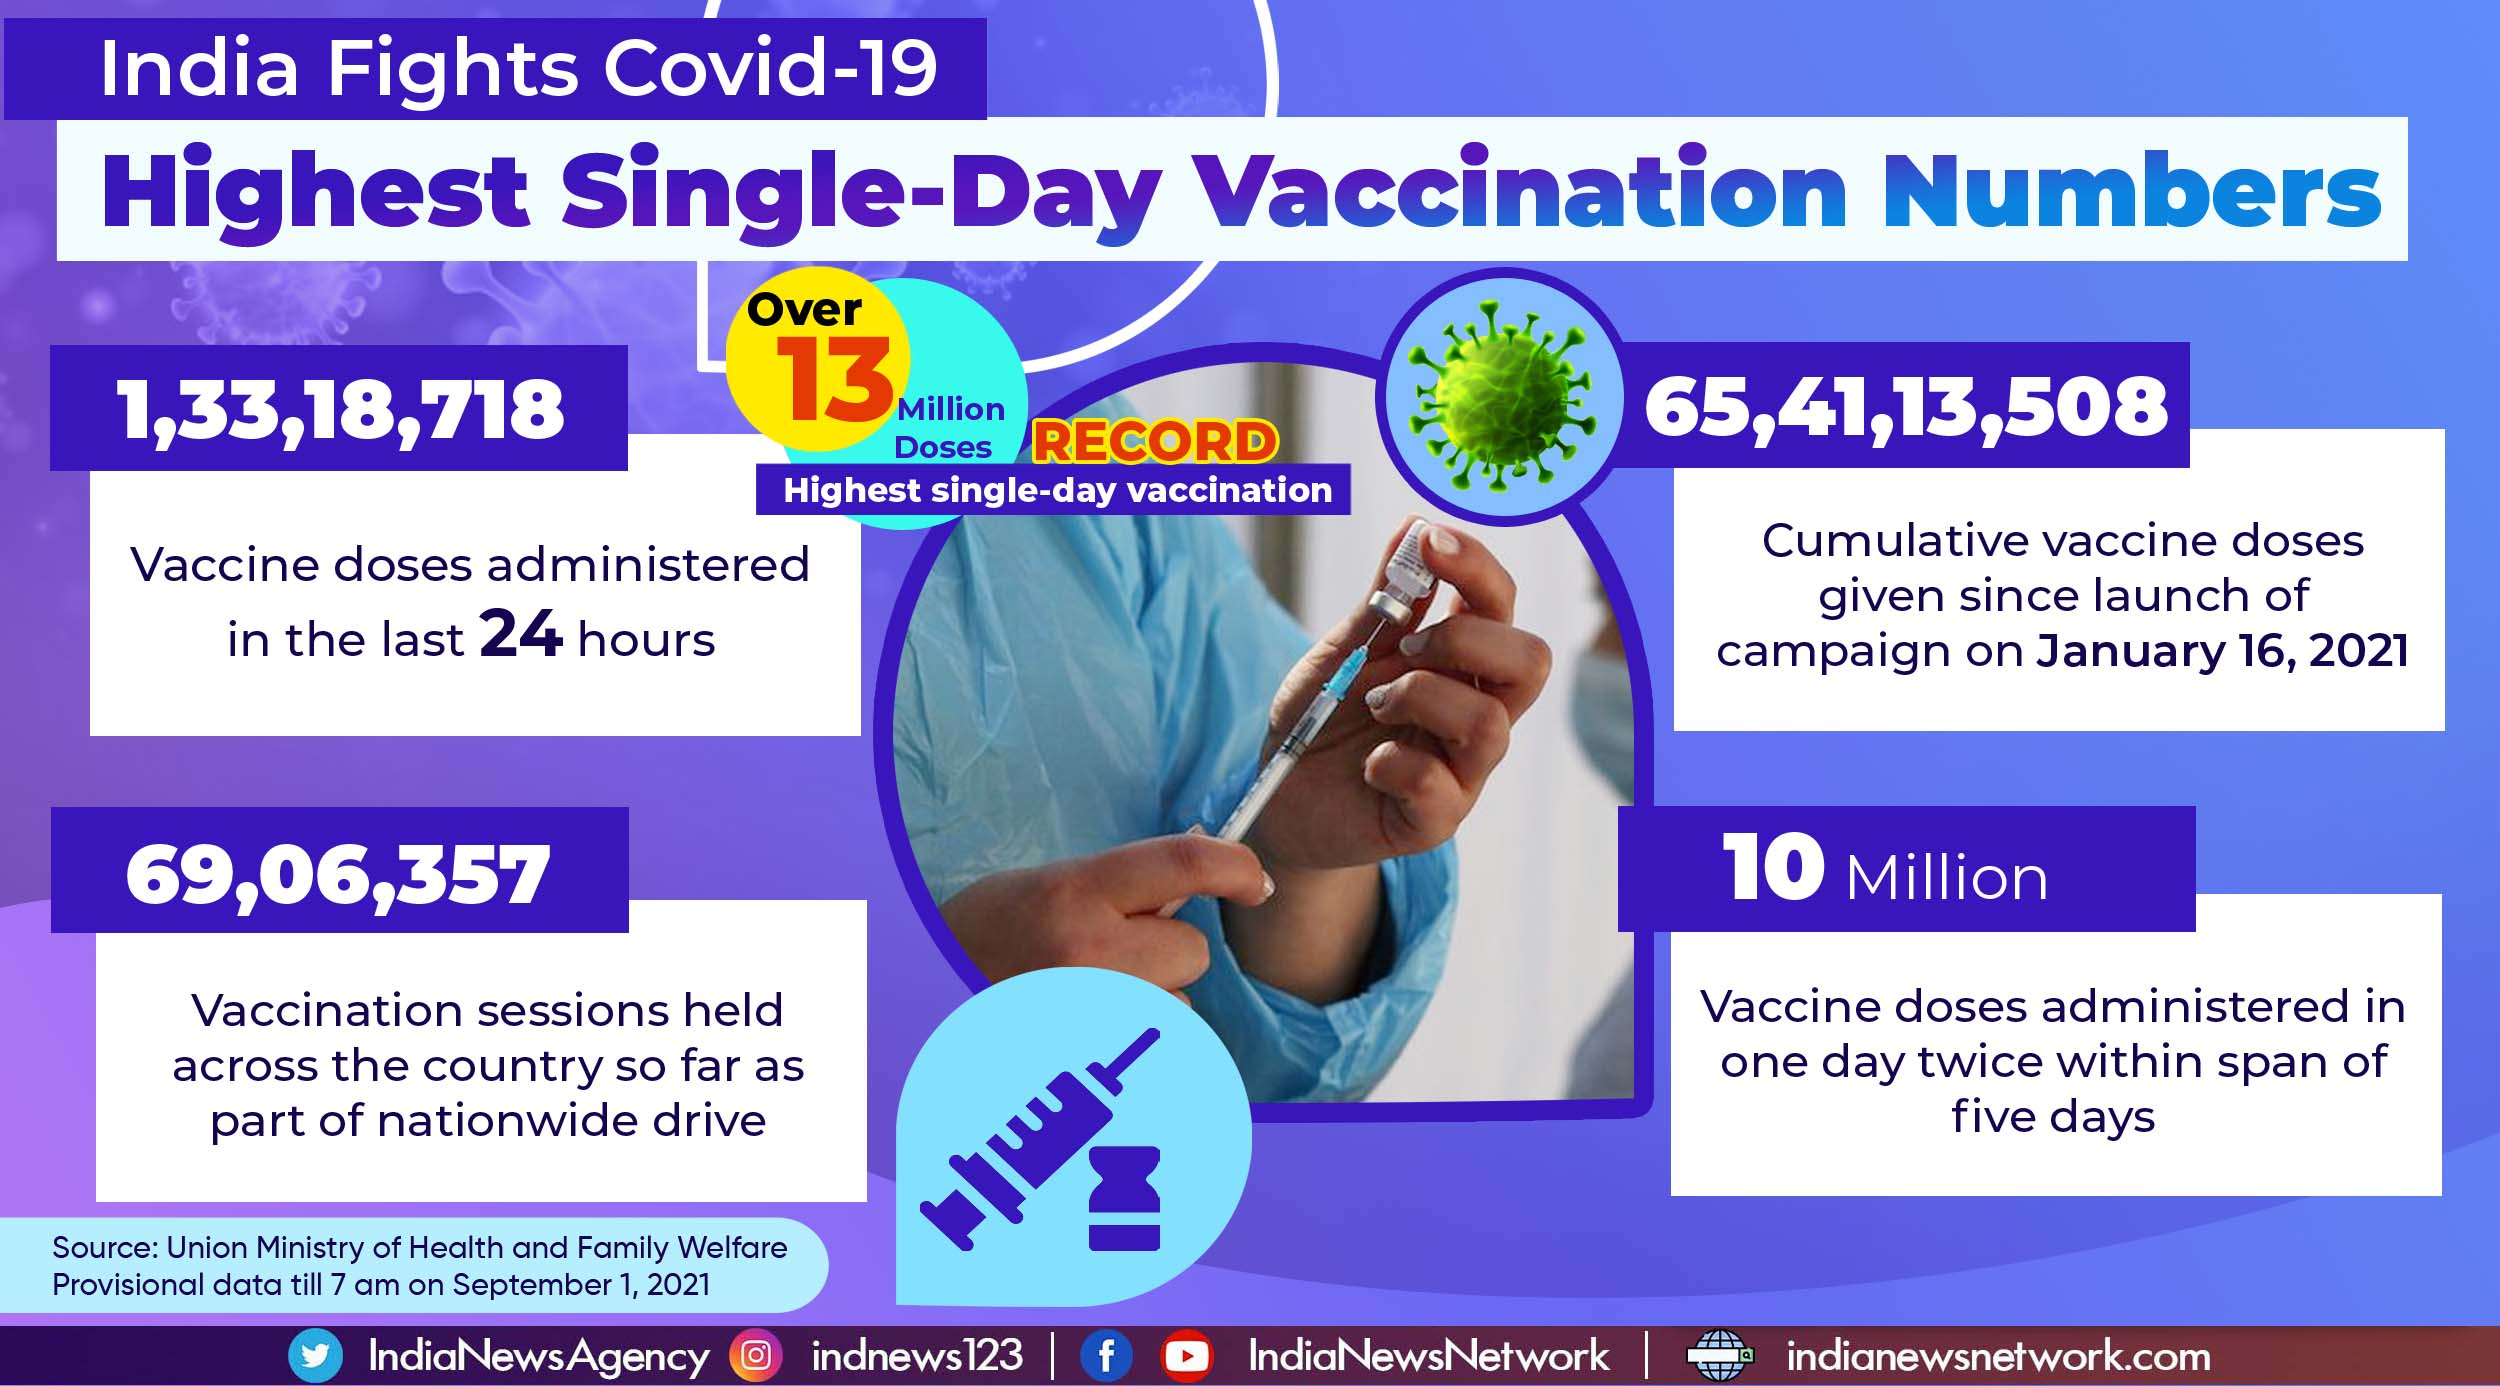 With over 13 million doses, India records highest single-day Covid-19 vaccination coverage